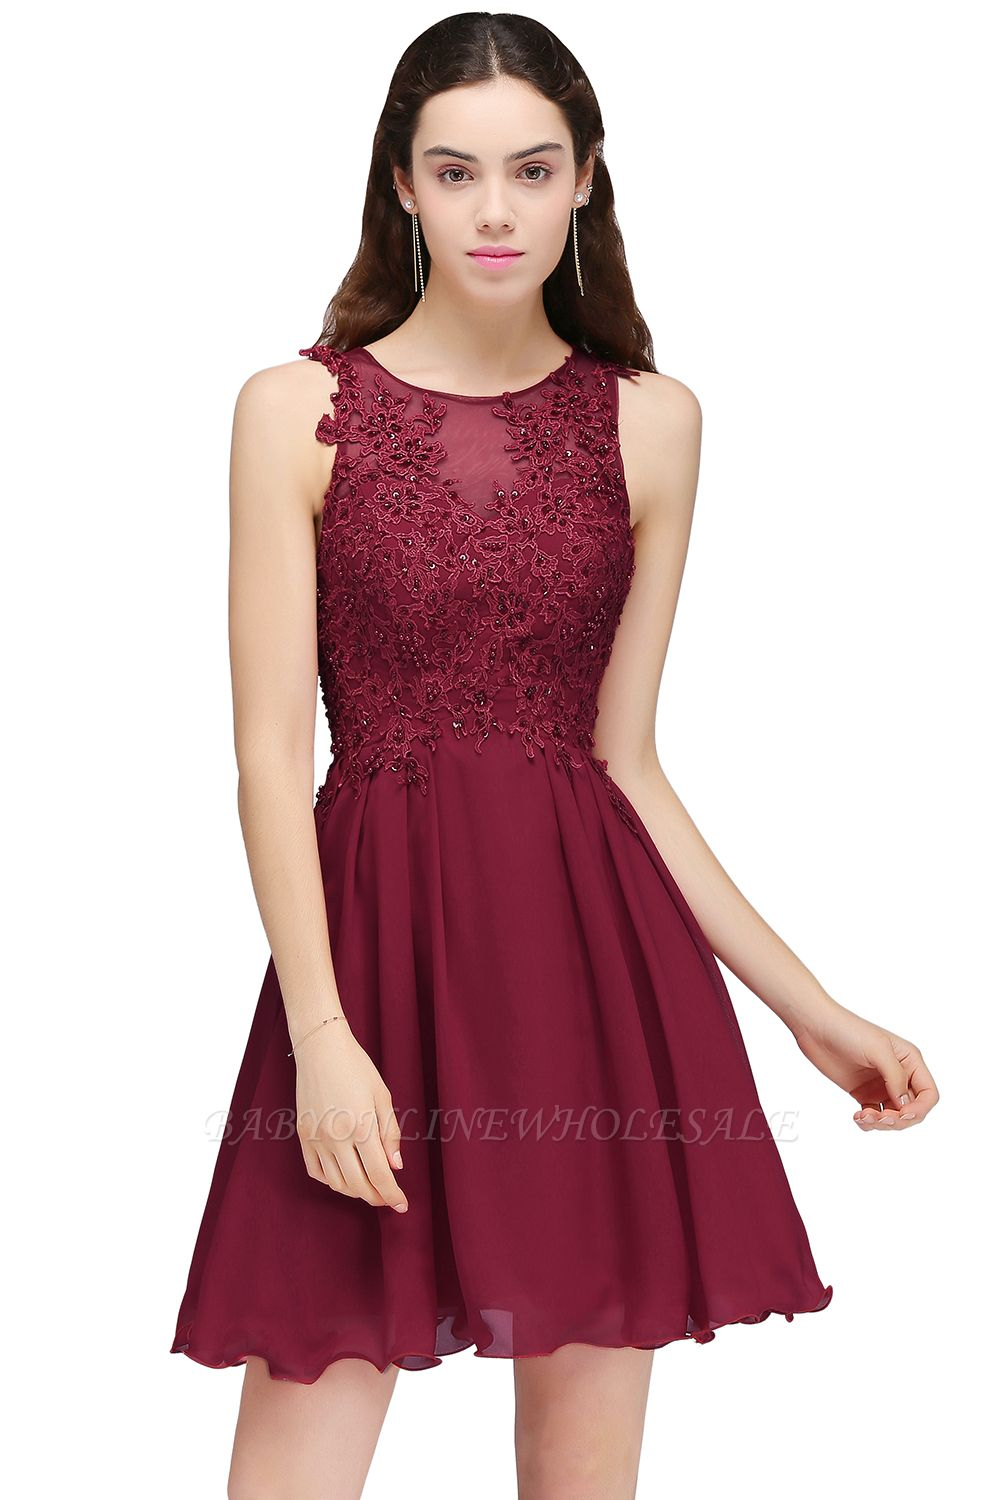 6fc4b4b8b453 CARLEE | A-line Jewel Short Chiffon Burgundy Homecoming Dresses with Lace  Appliques | www.babyonlinewholesale.com